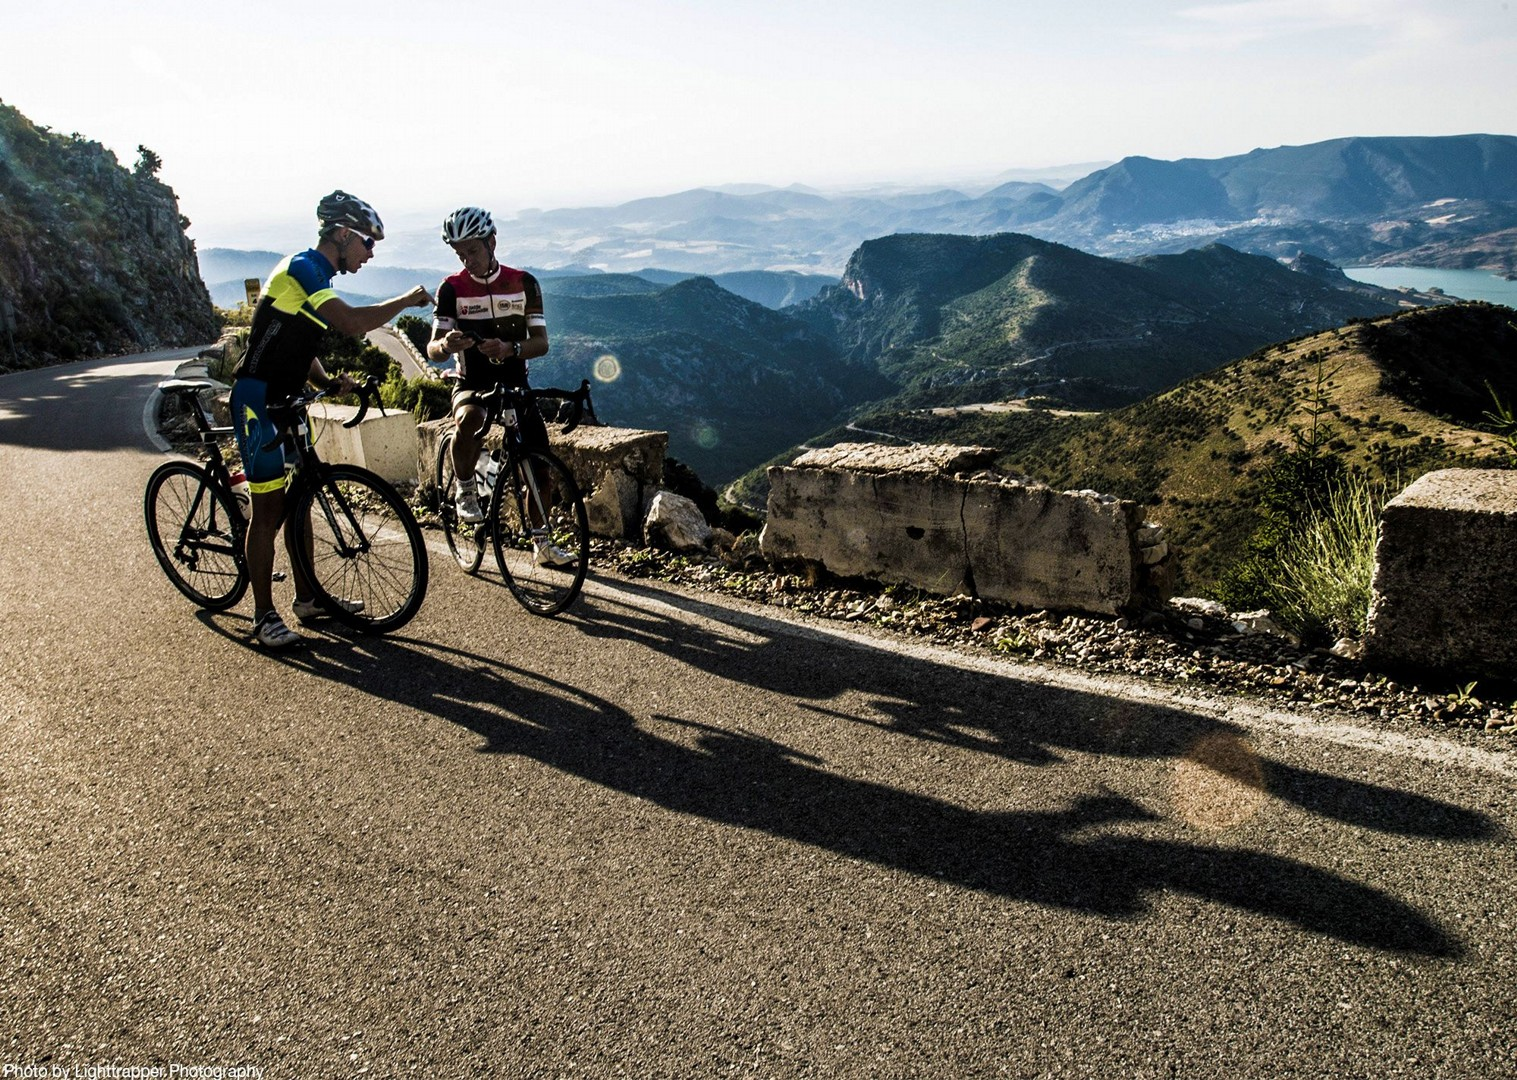 make-friends-saddle-skedaddle-road-cycling-guided-holiday.jpg - Southern Spain - Andalucia - Los Pueblos Blancos - Guided Road Cycling Holiday - Road Cycling